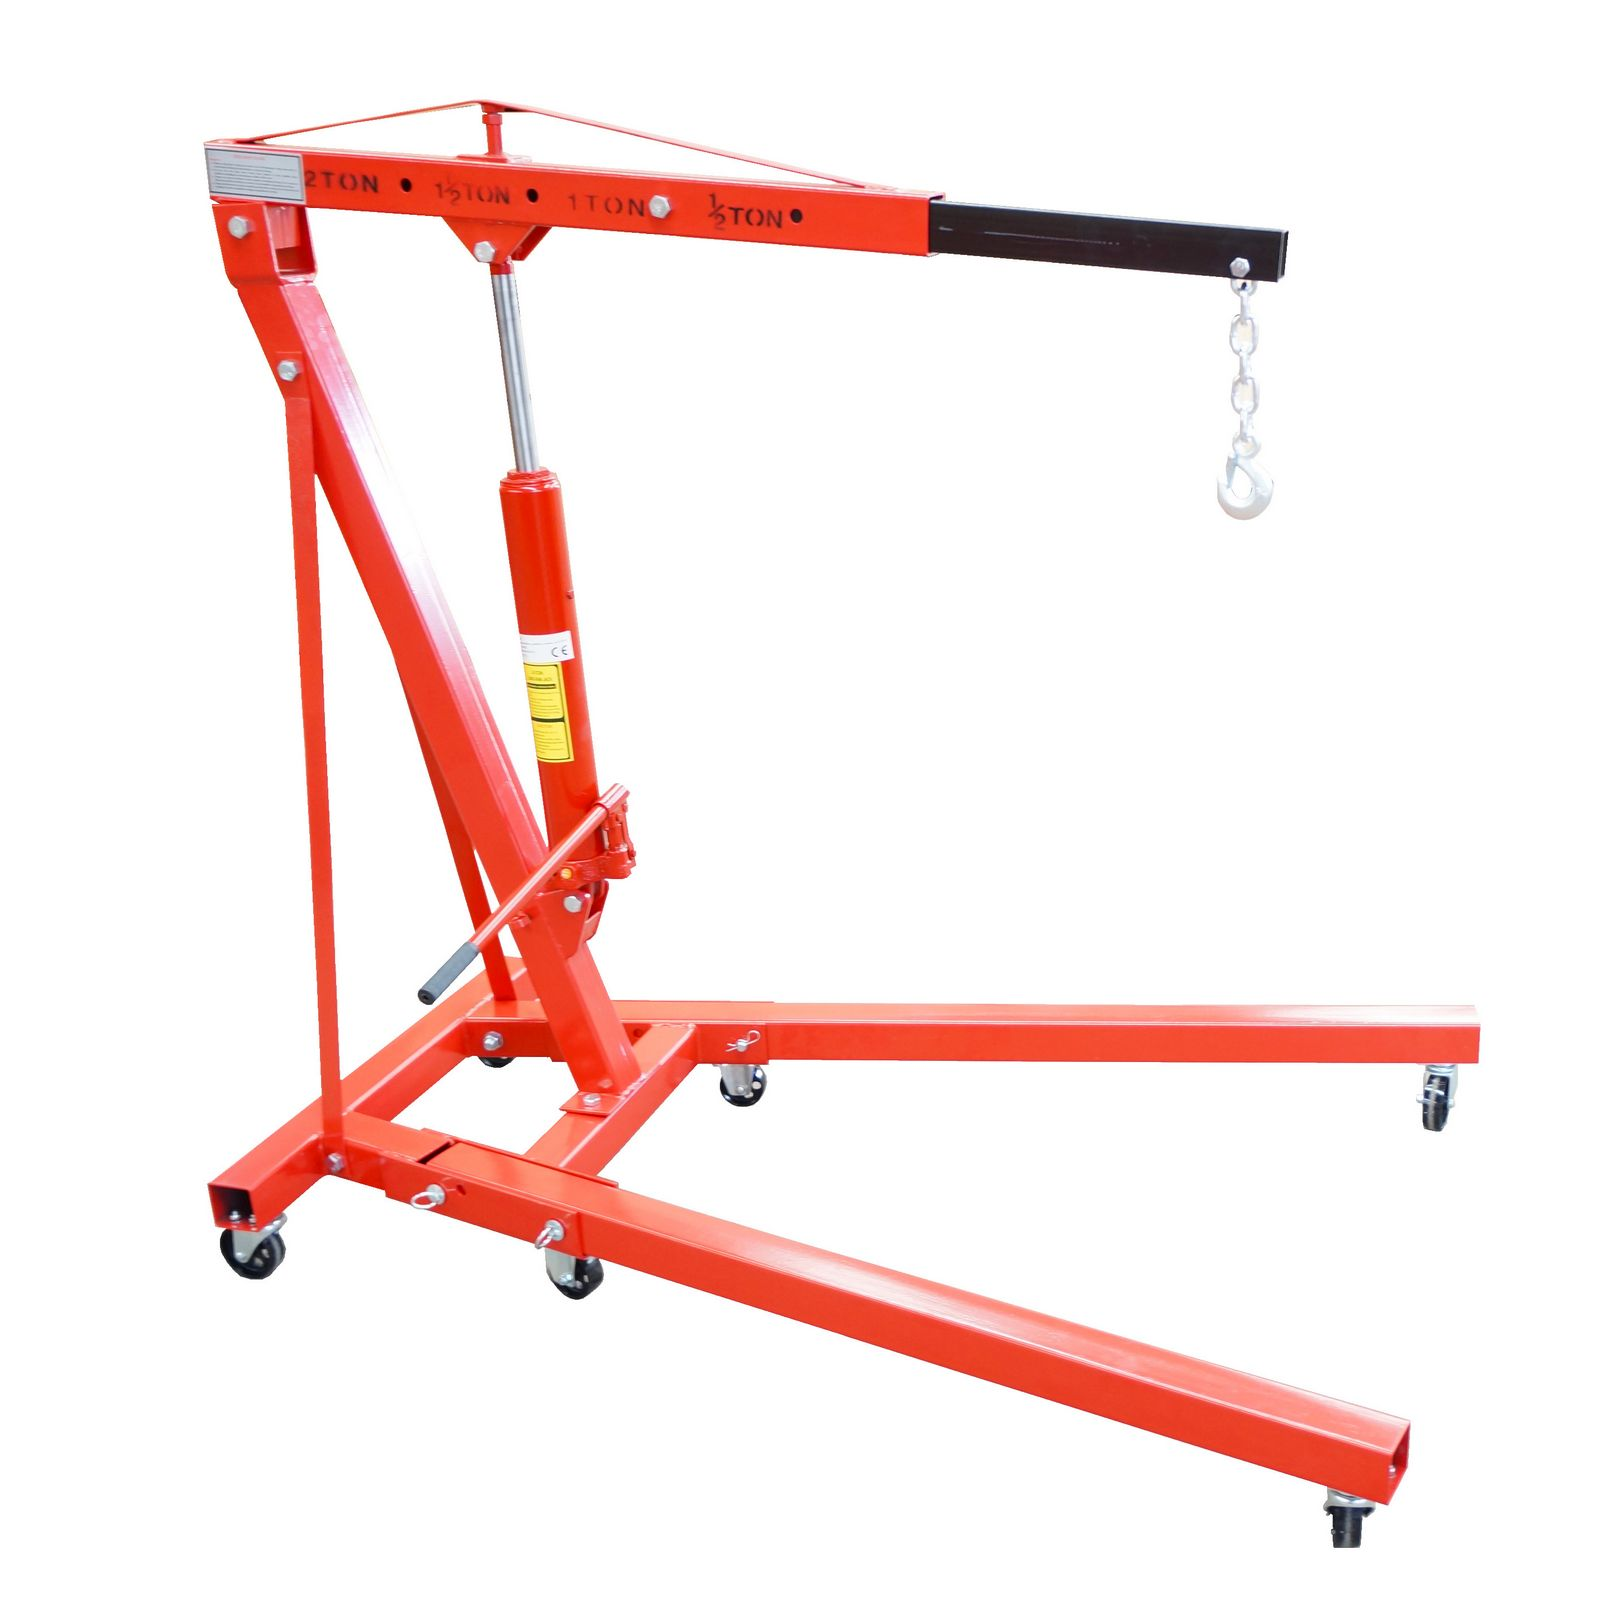 NEW 2 TON FOLDING HYDRAULIC ENGINE CRANE/HOIST/LIFT